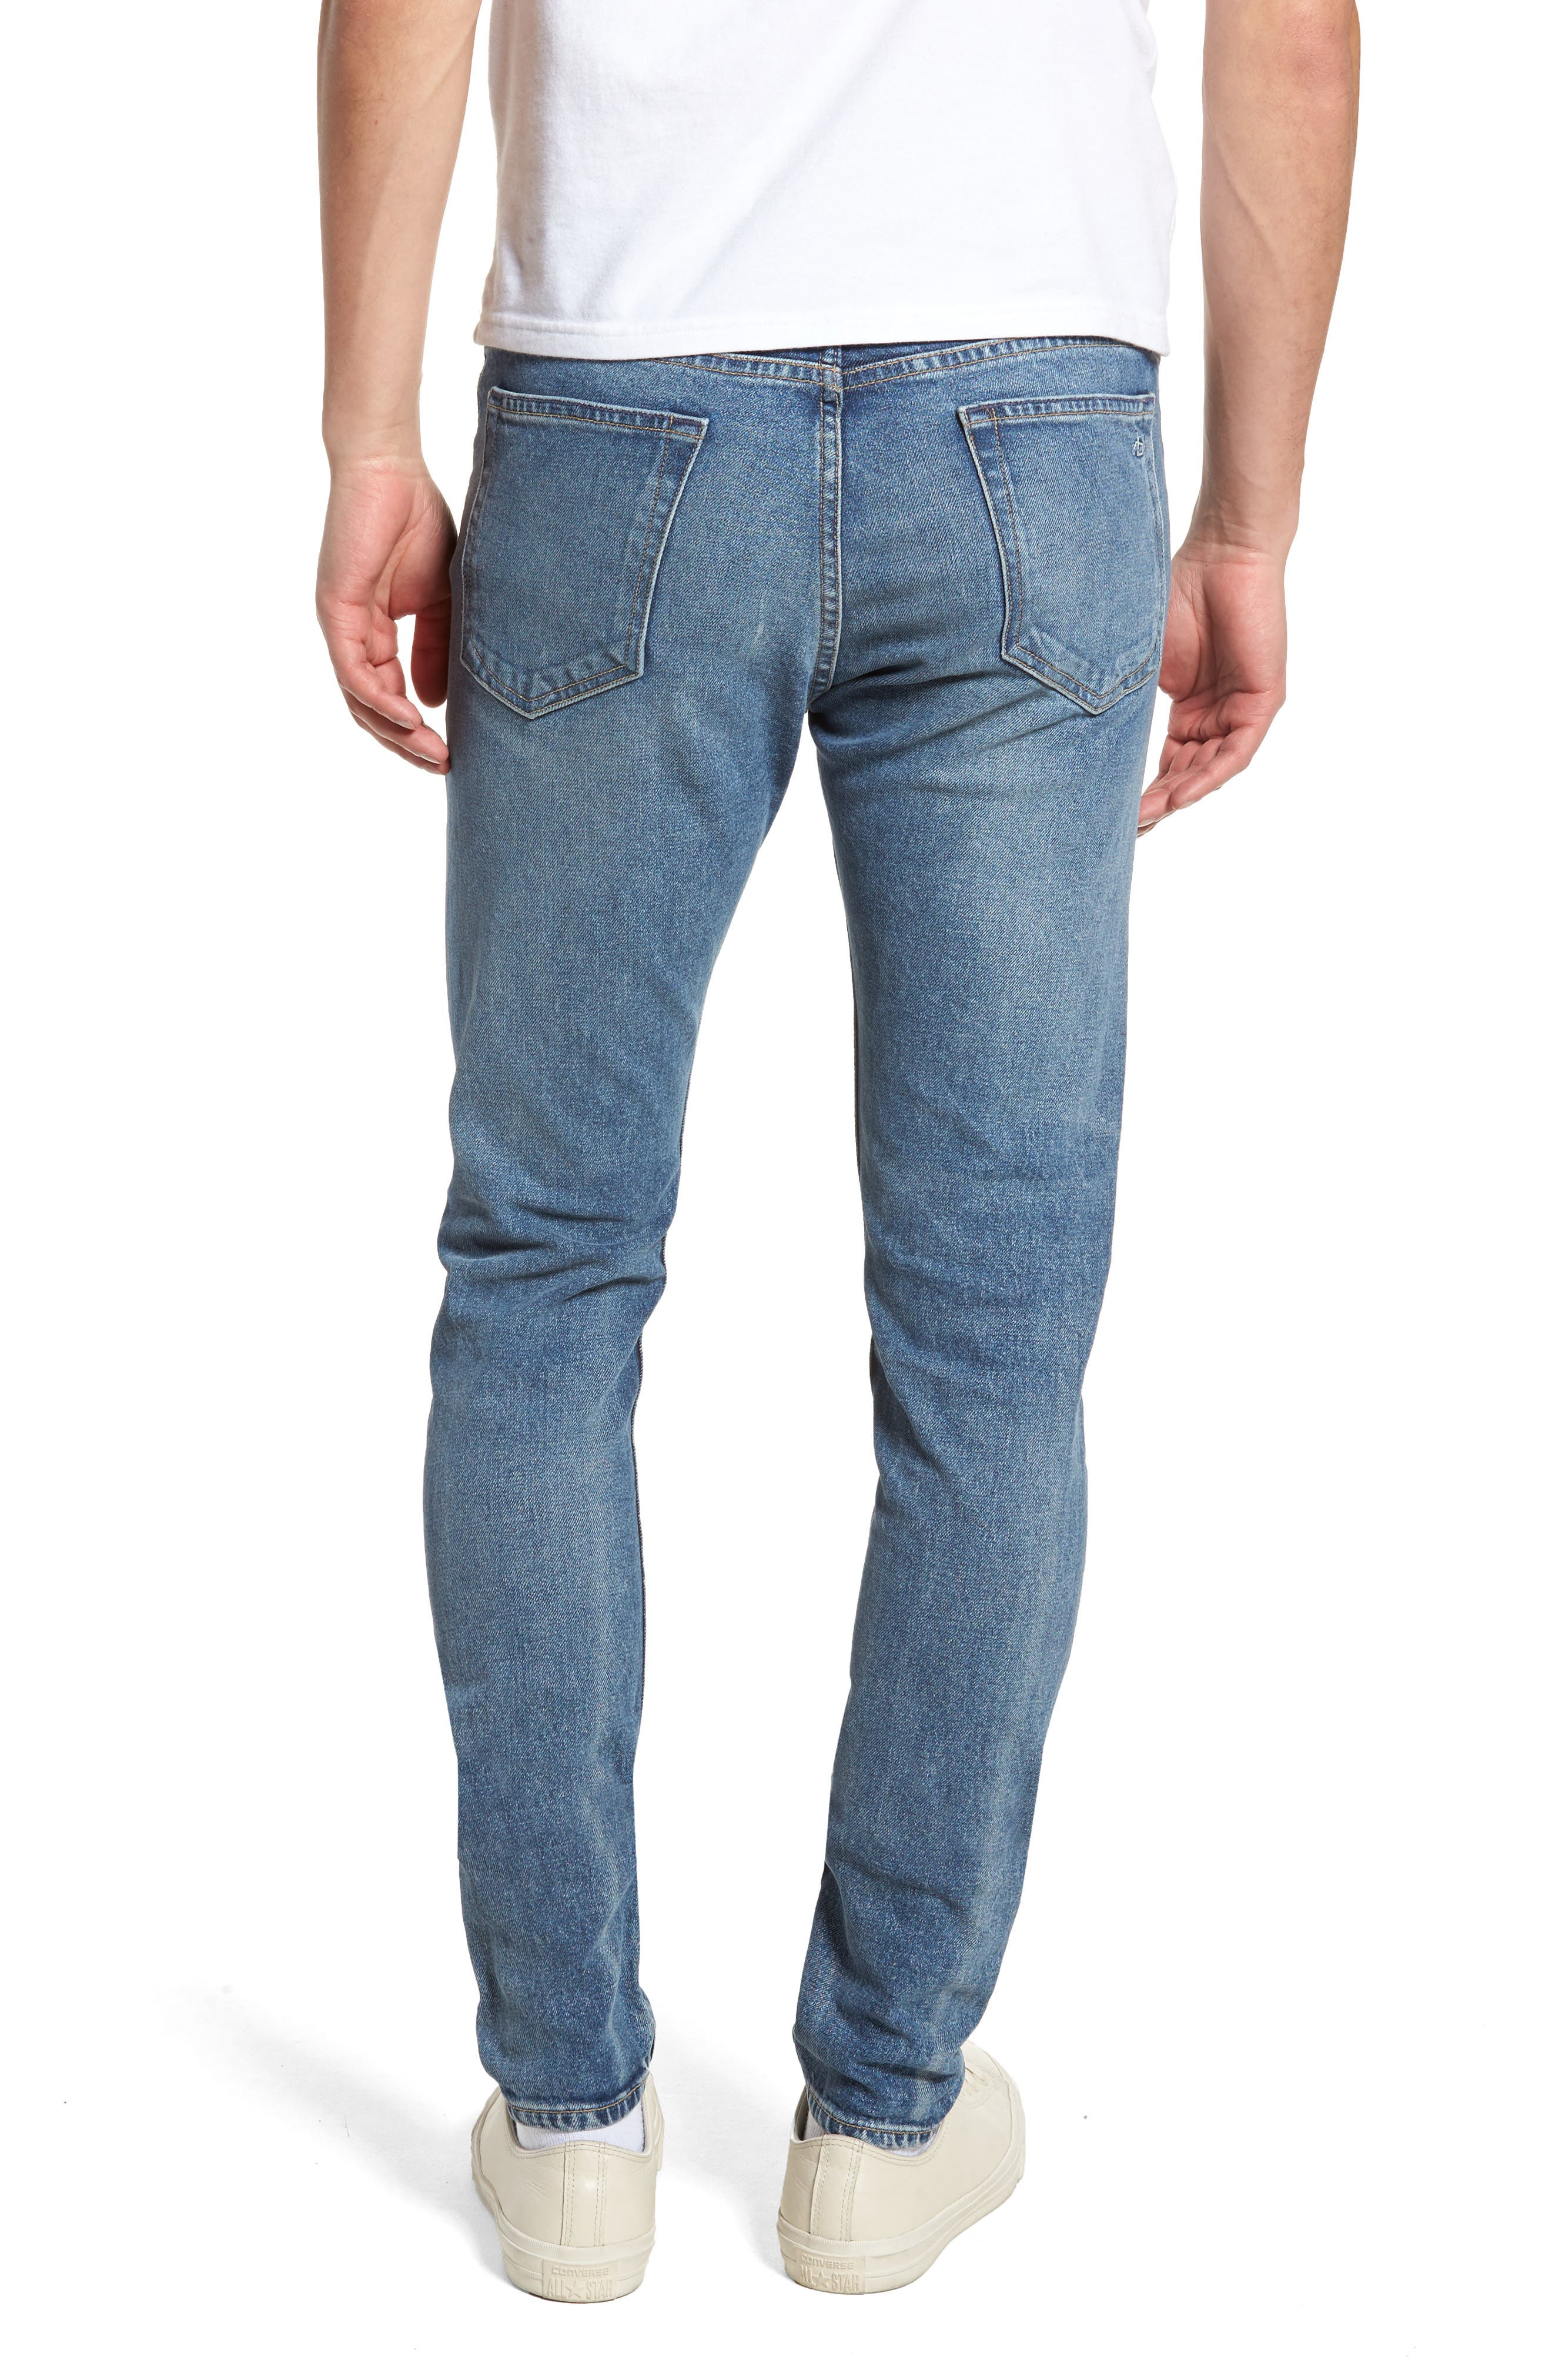 Fit 1 Skinny Fit Jeans,                             Alternate thumbnail 2, color,                             BRIGHTON